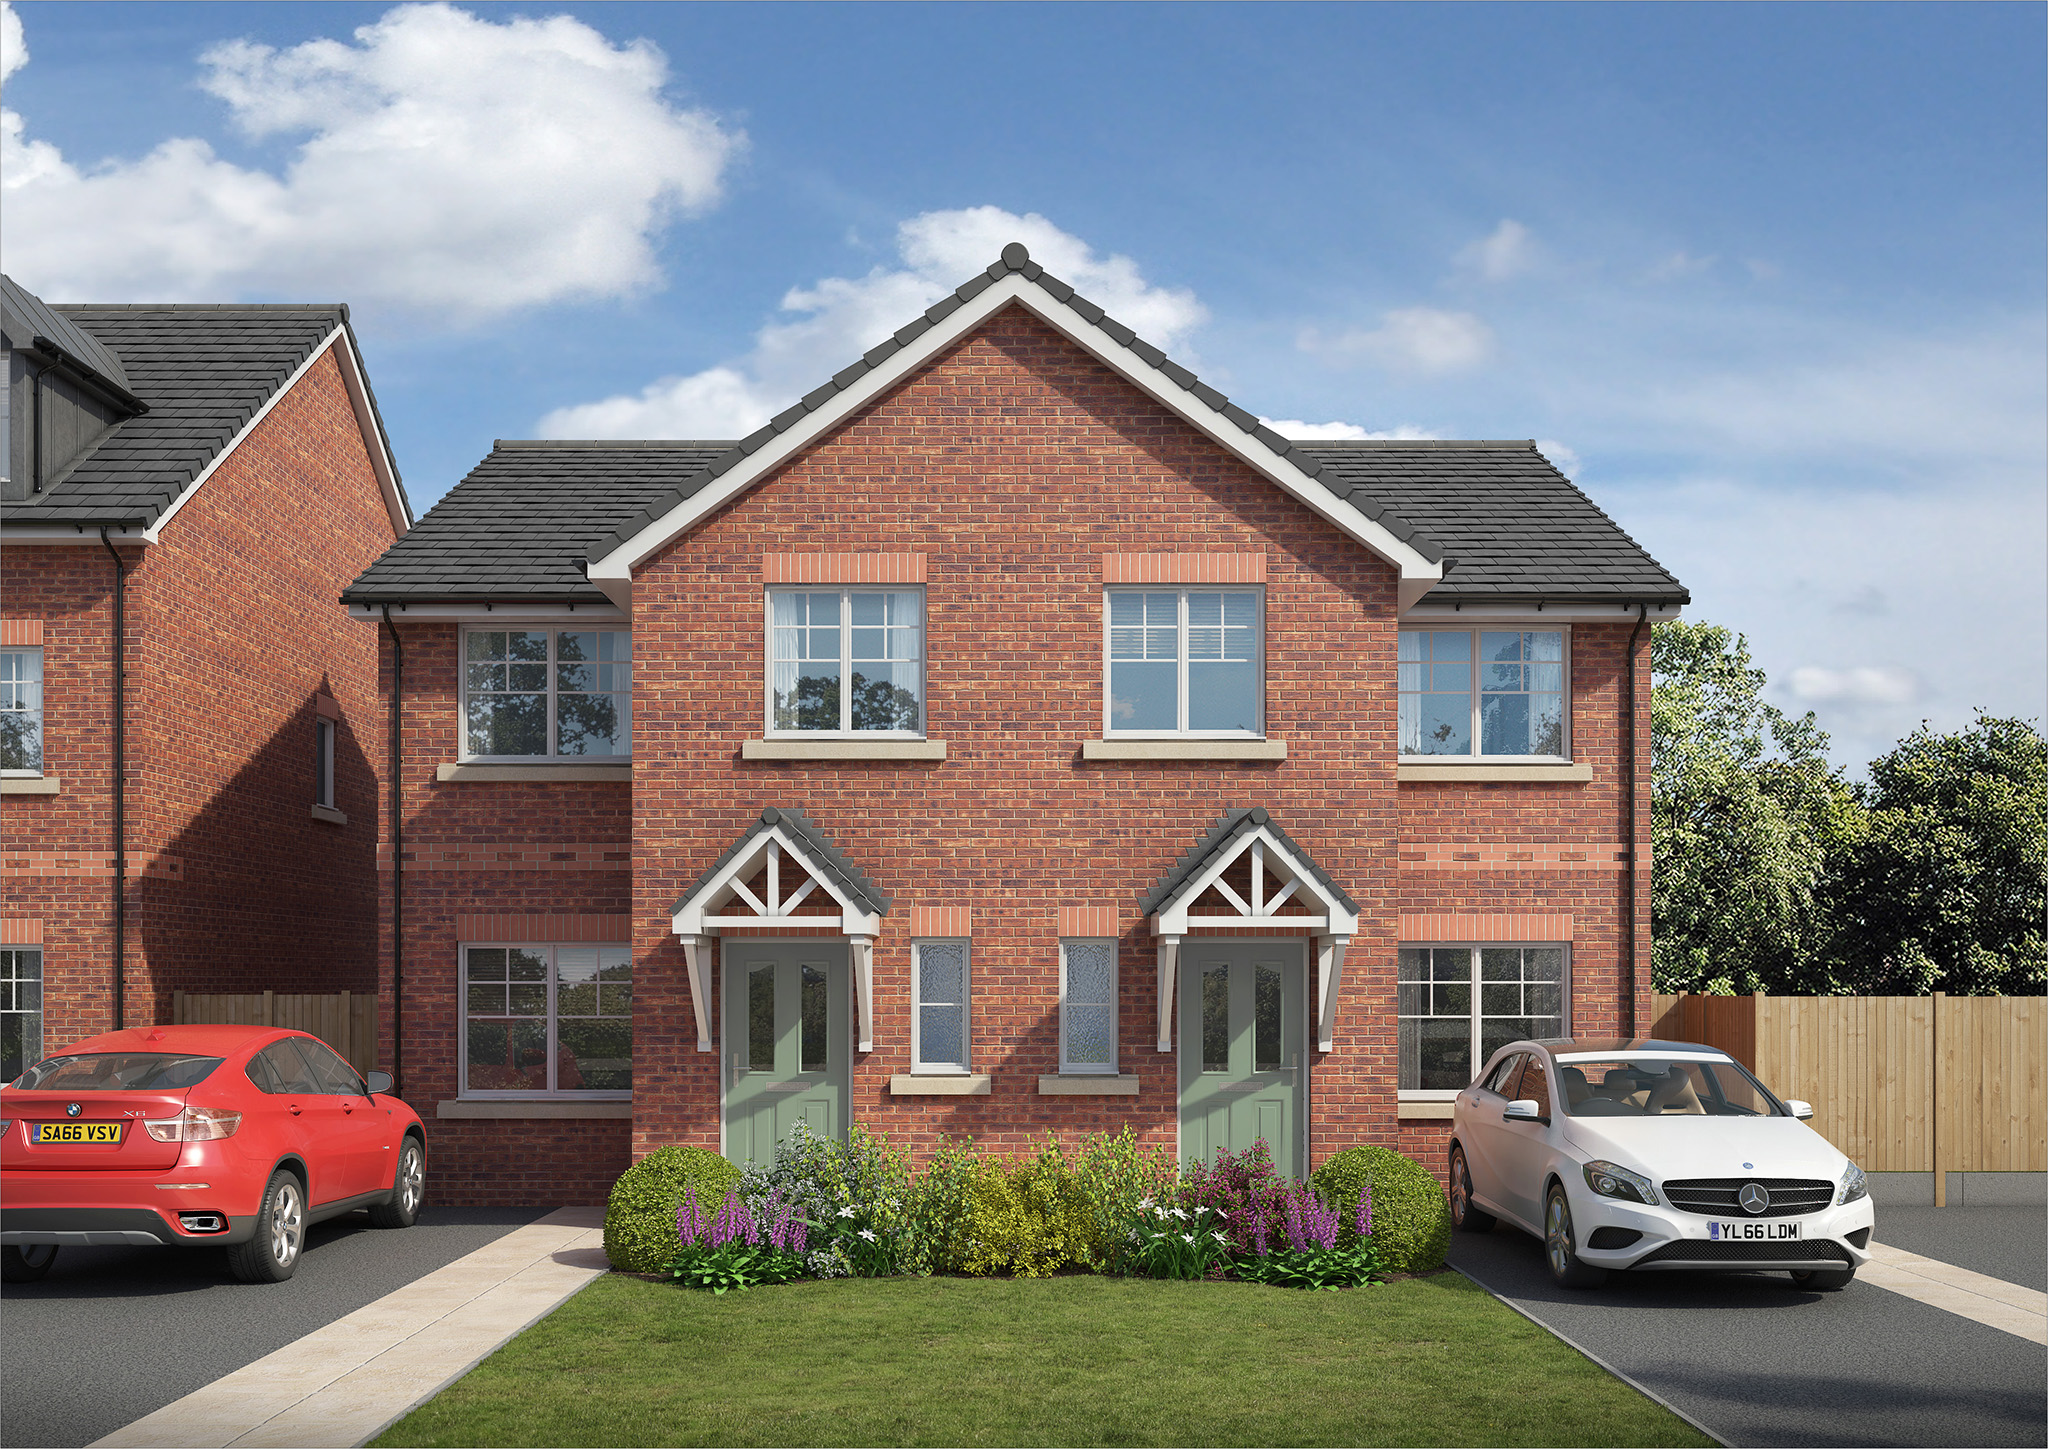 Plot 34 The Warburton